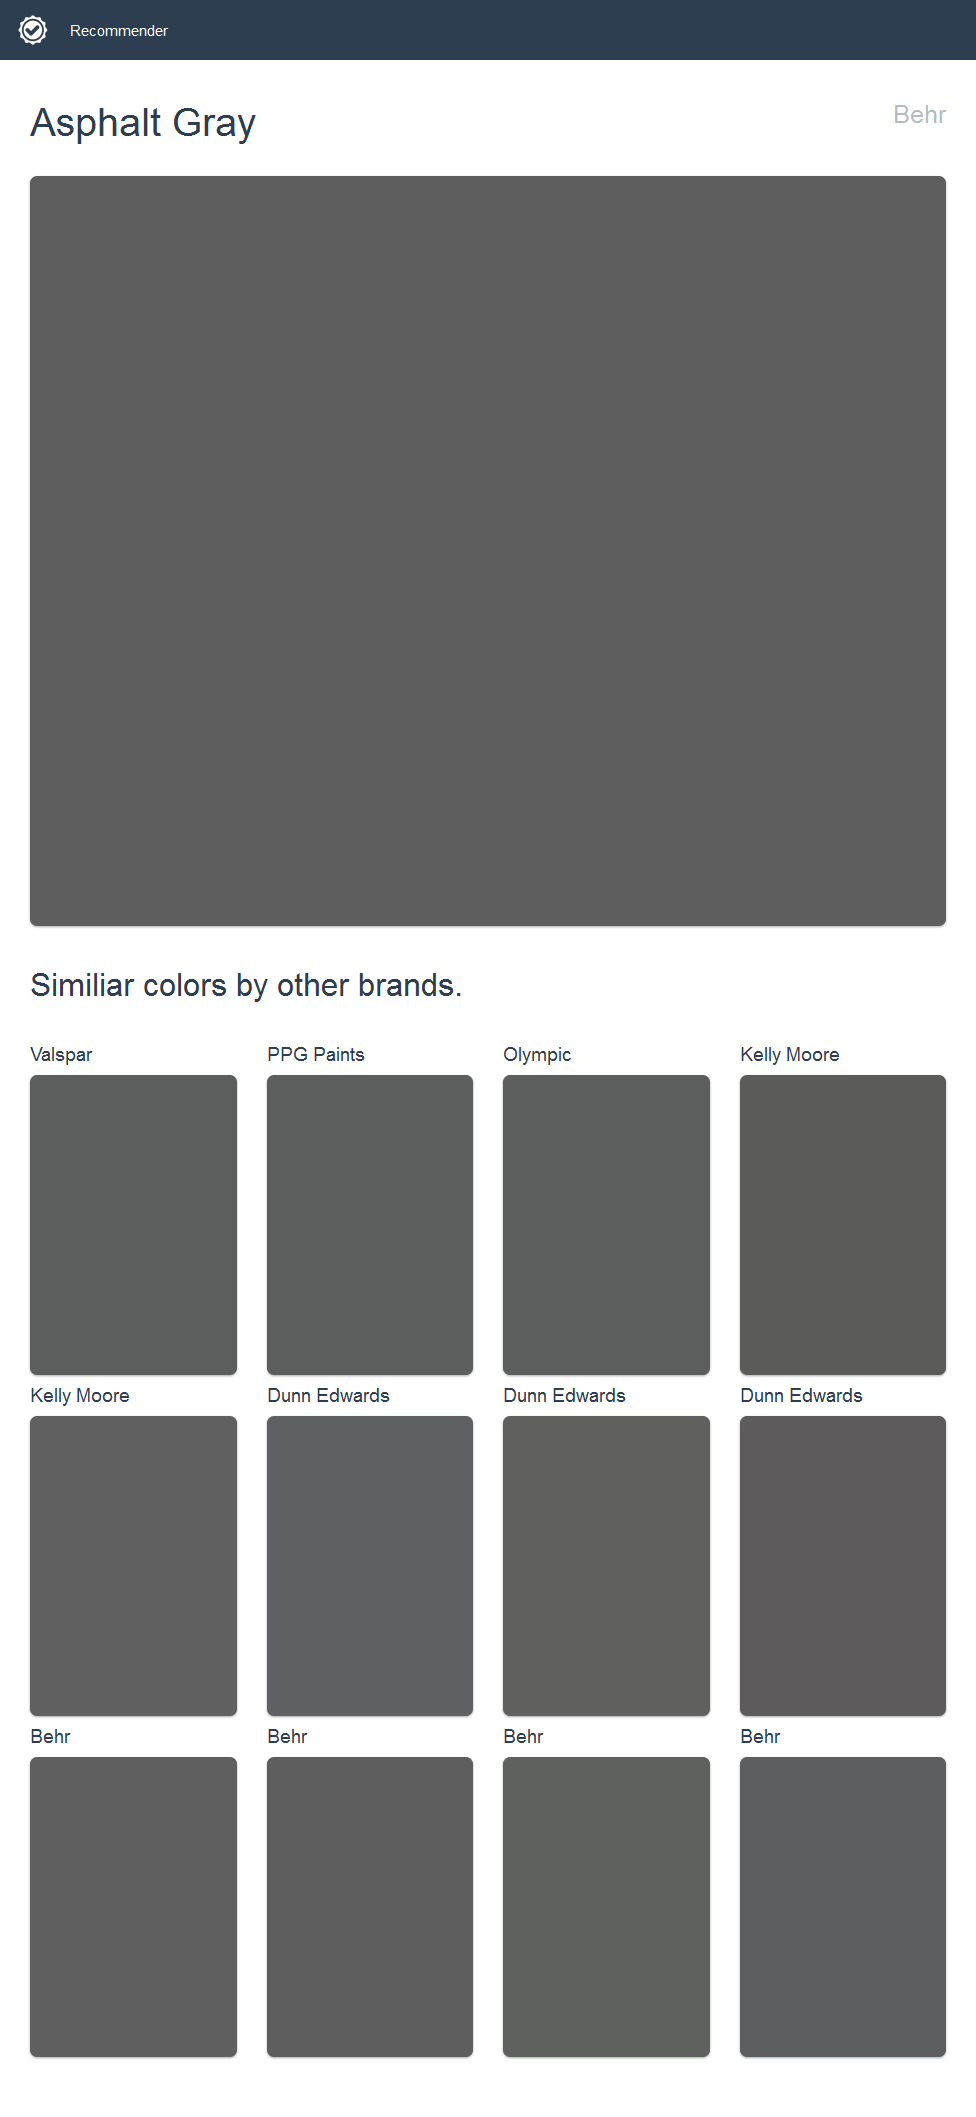 Asphalt Gray Behr Click The Image To See Similiar Colors By Other Brands